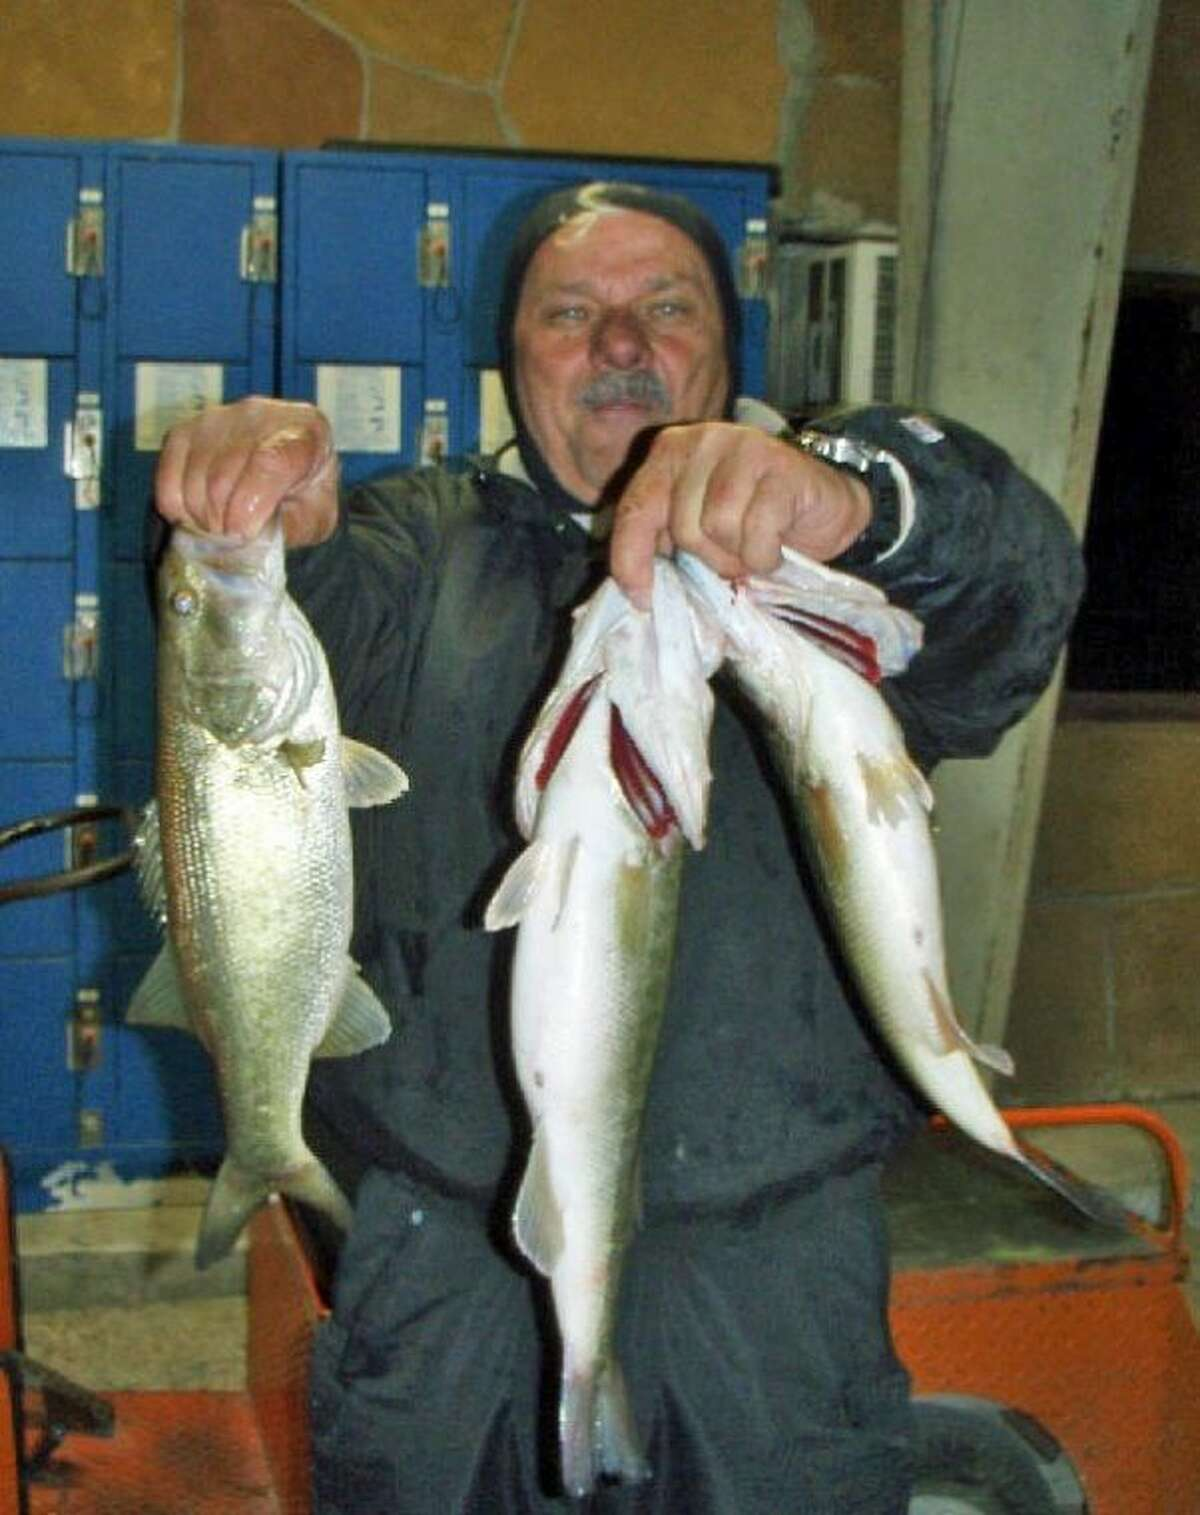 J.D. Baer finished second in the Conroe Bass Tuesday Night Tournament with a stringer weight of 6.57 pounds.